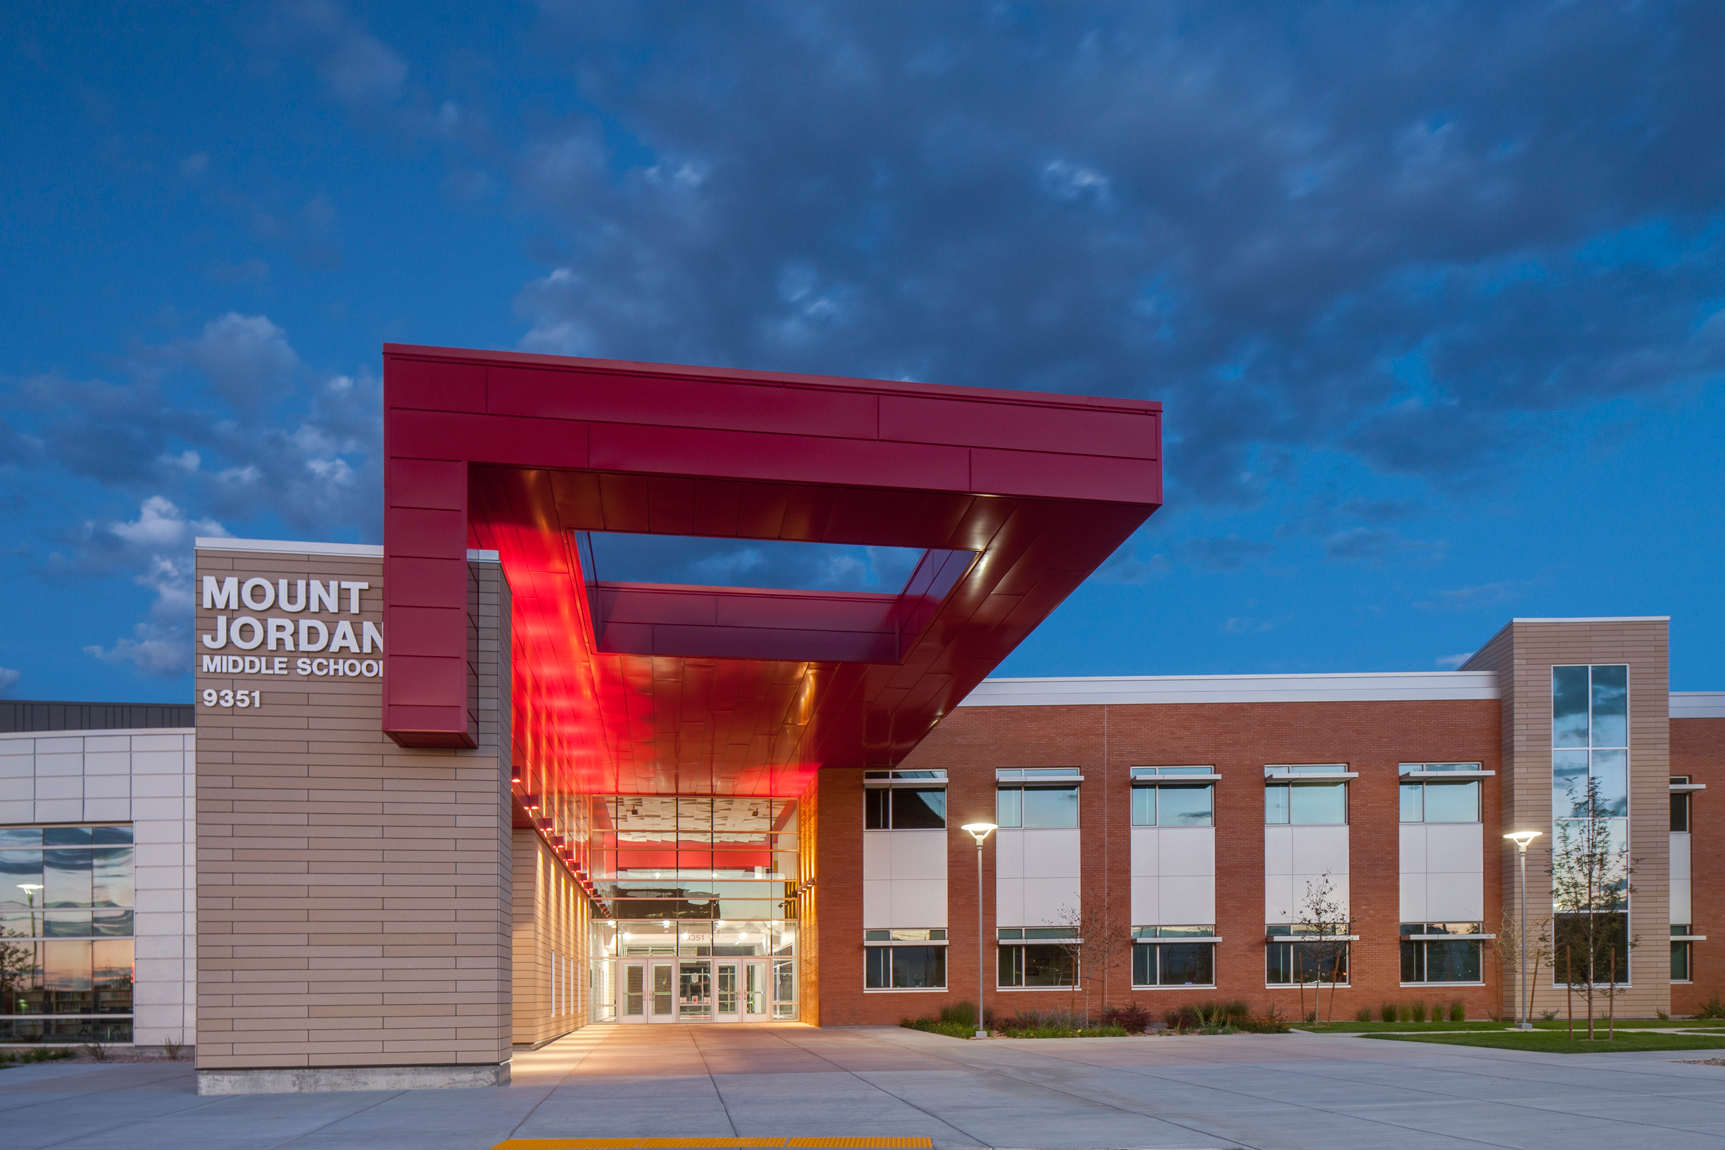 Architectural view of red canopy, entrance to middle school, at dusk. 